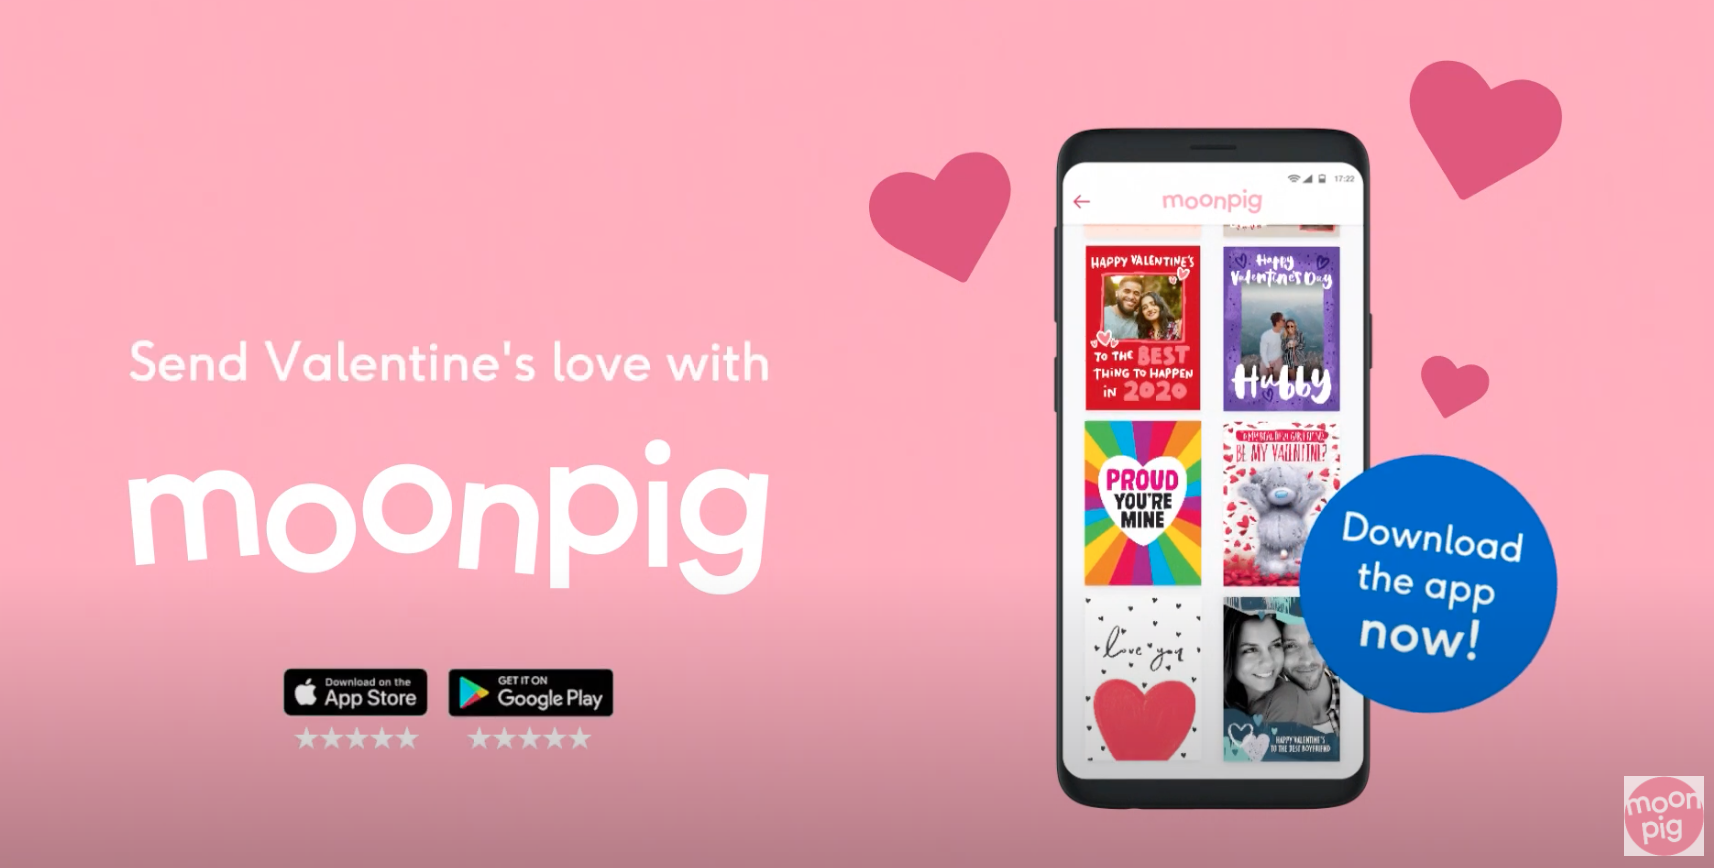 Above: Part of Moonpig's Valentine's Day promotion.